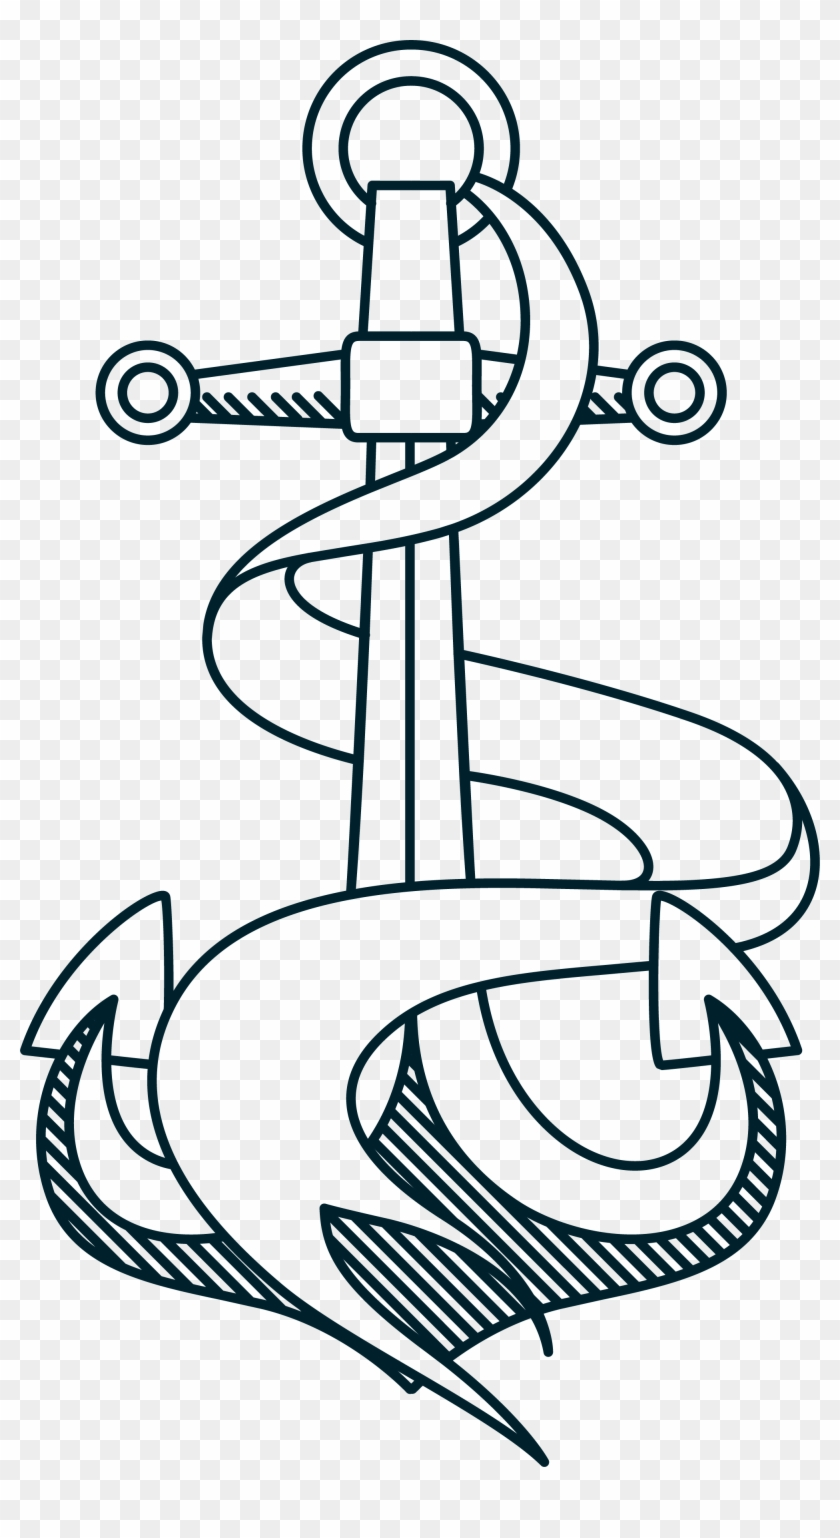 Anchor Rope Clip Art - Drawing #177435